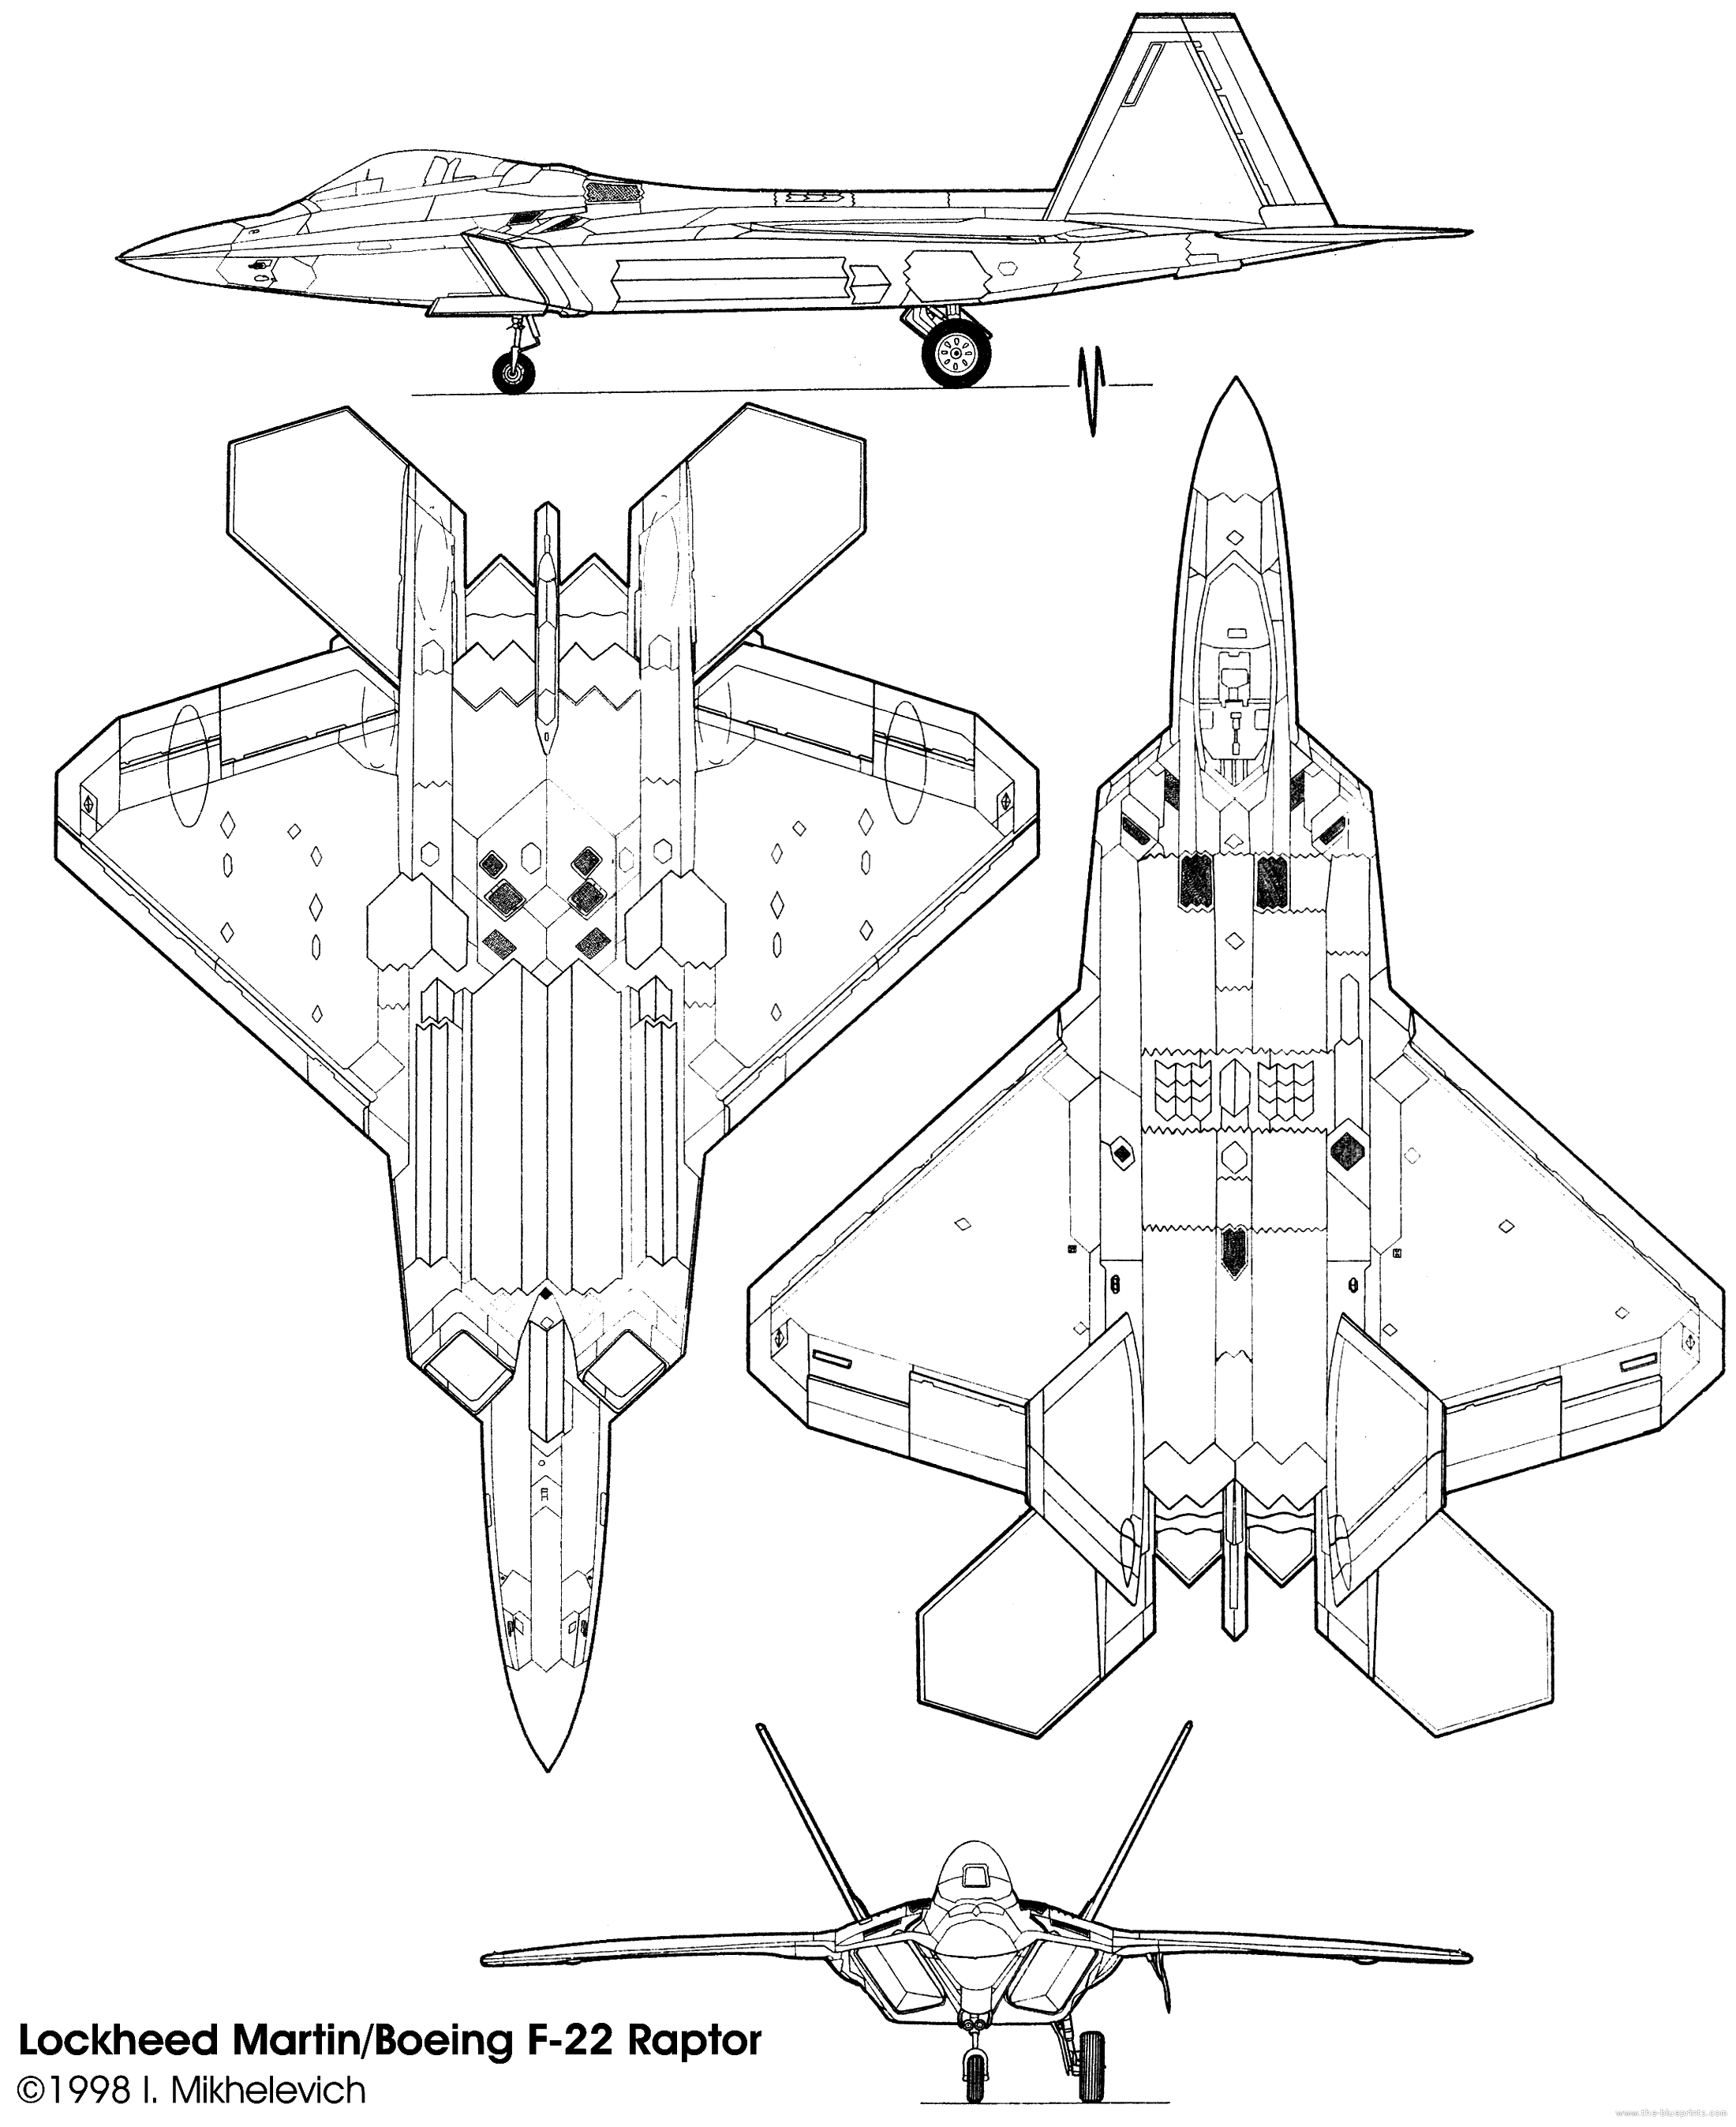 F 22 Raptor Schematic - Wiring Liry Diagram Experts